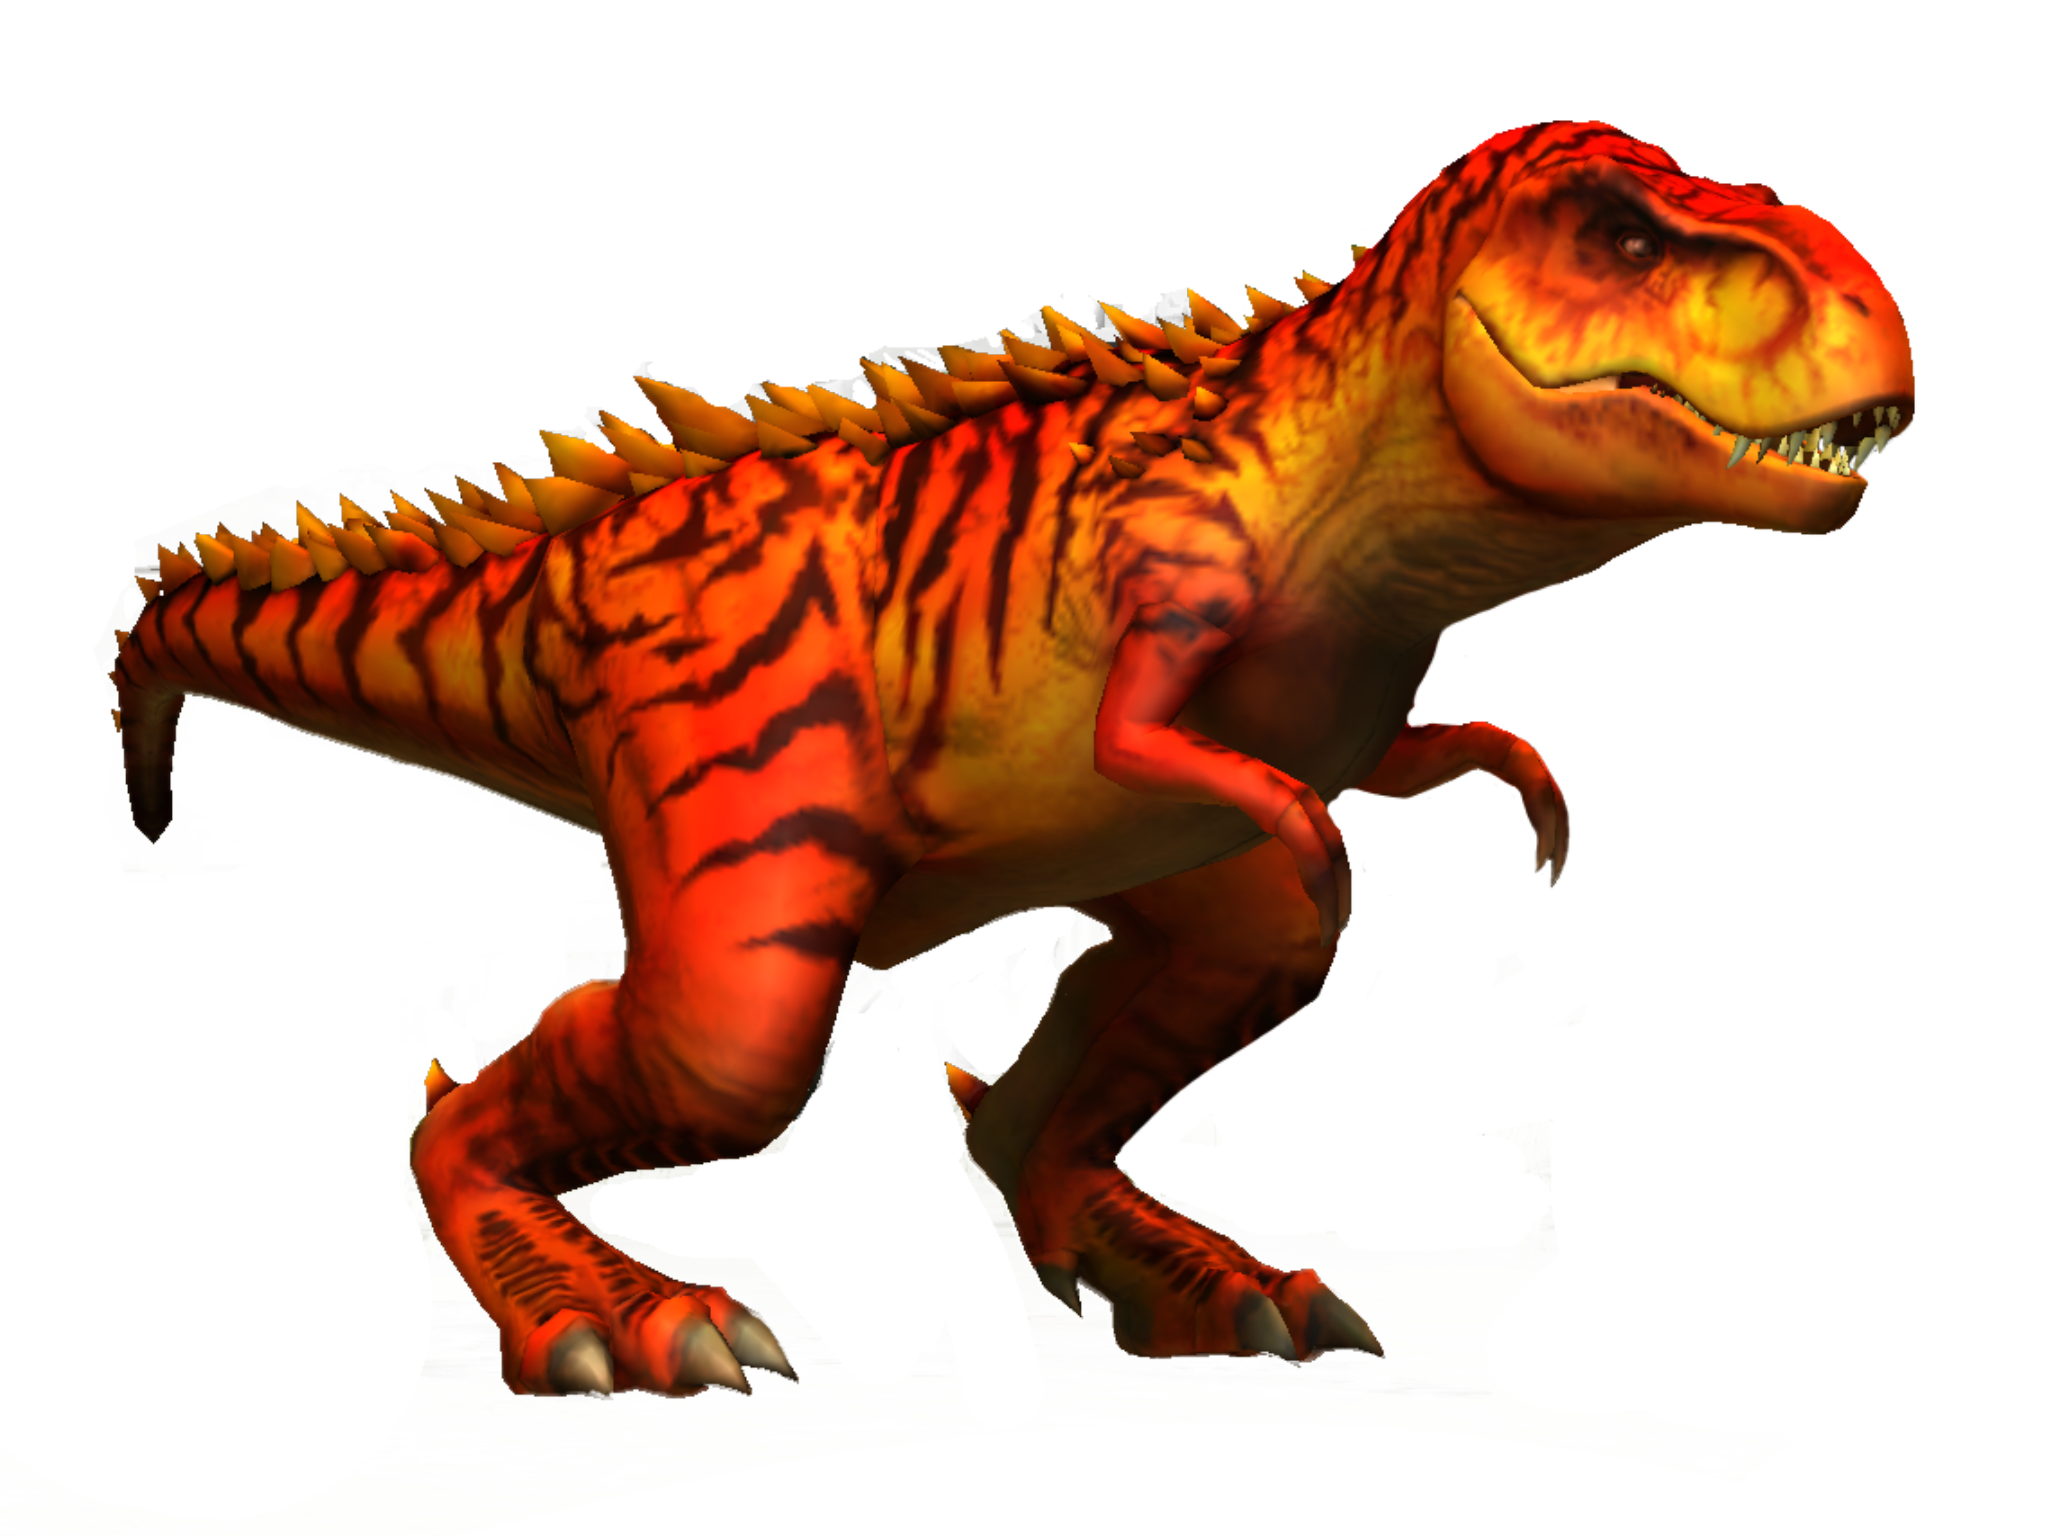 Jurassic World Rexy Png By Manusaurio On Deviantart Jurassic World Dinosaurs Dinosaur Images Dinosaur Pictures